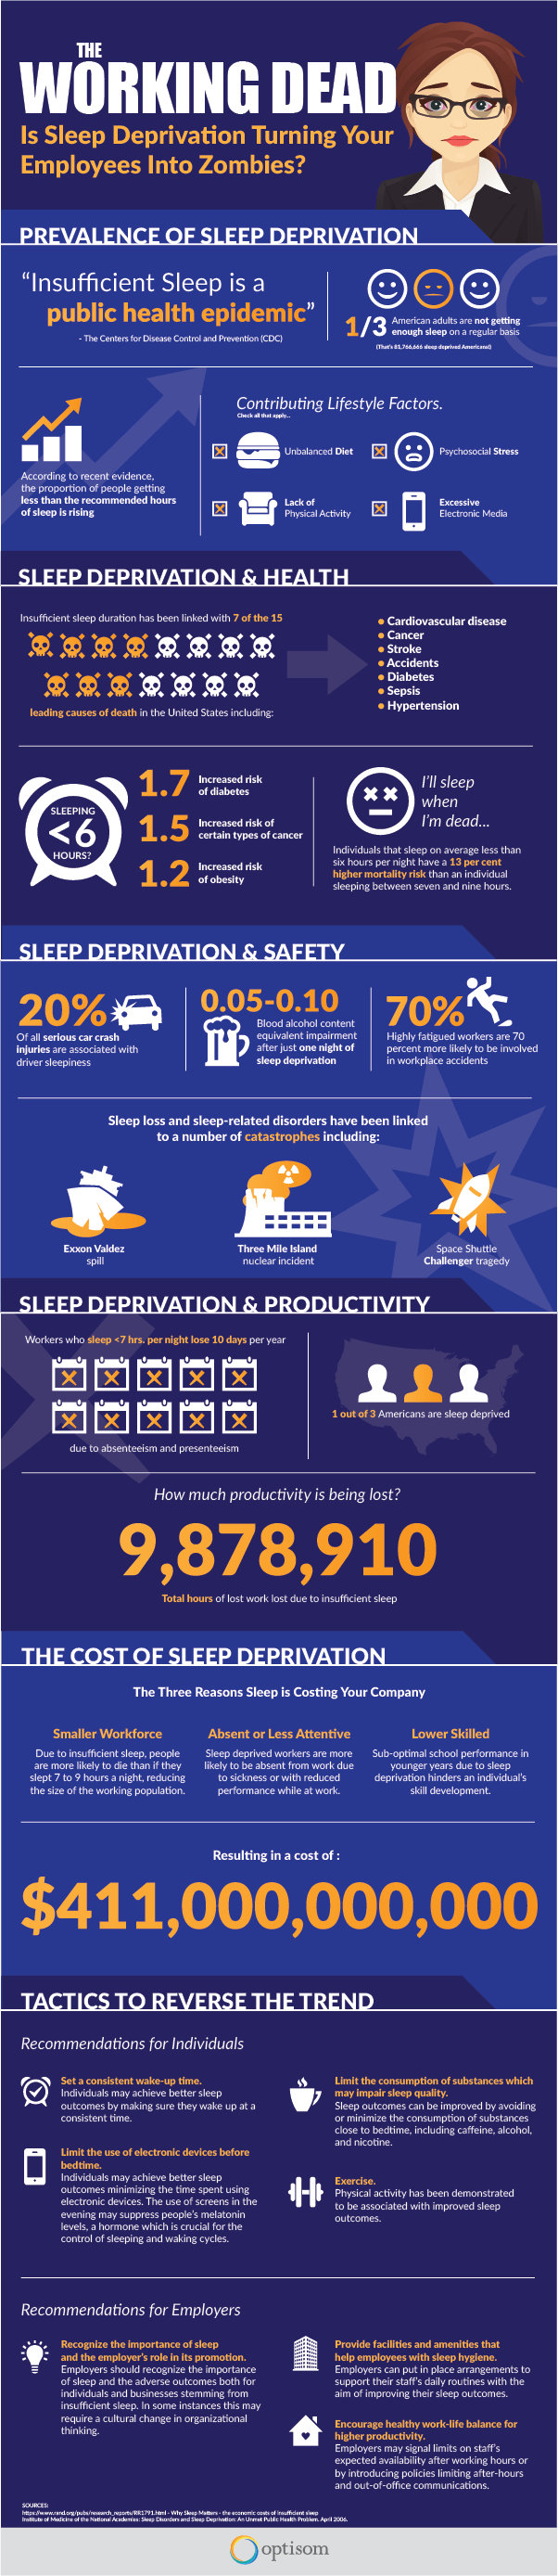 The Working Dead. Is Sleep Deprivation Turning Your Employees Into Zombies?